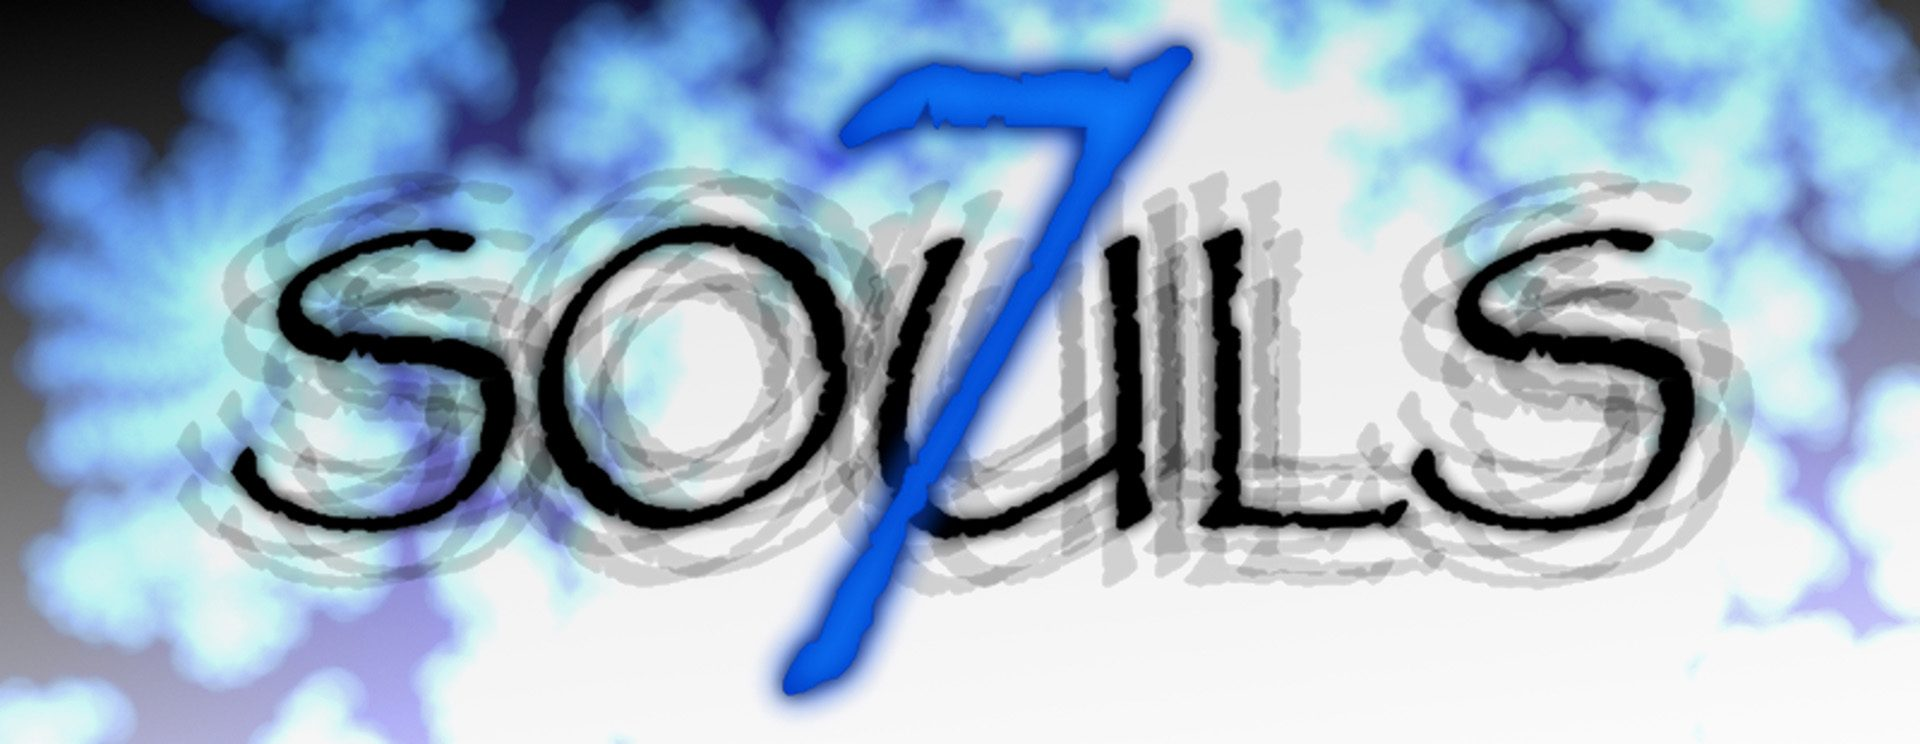 cropped-banner_small-5.jpg